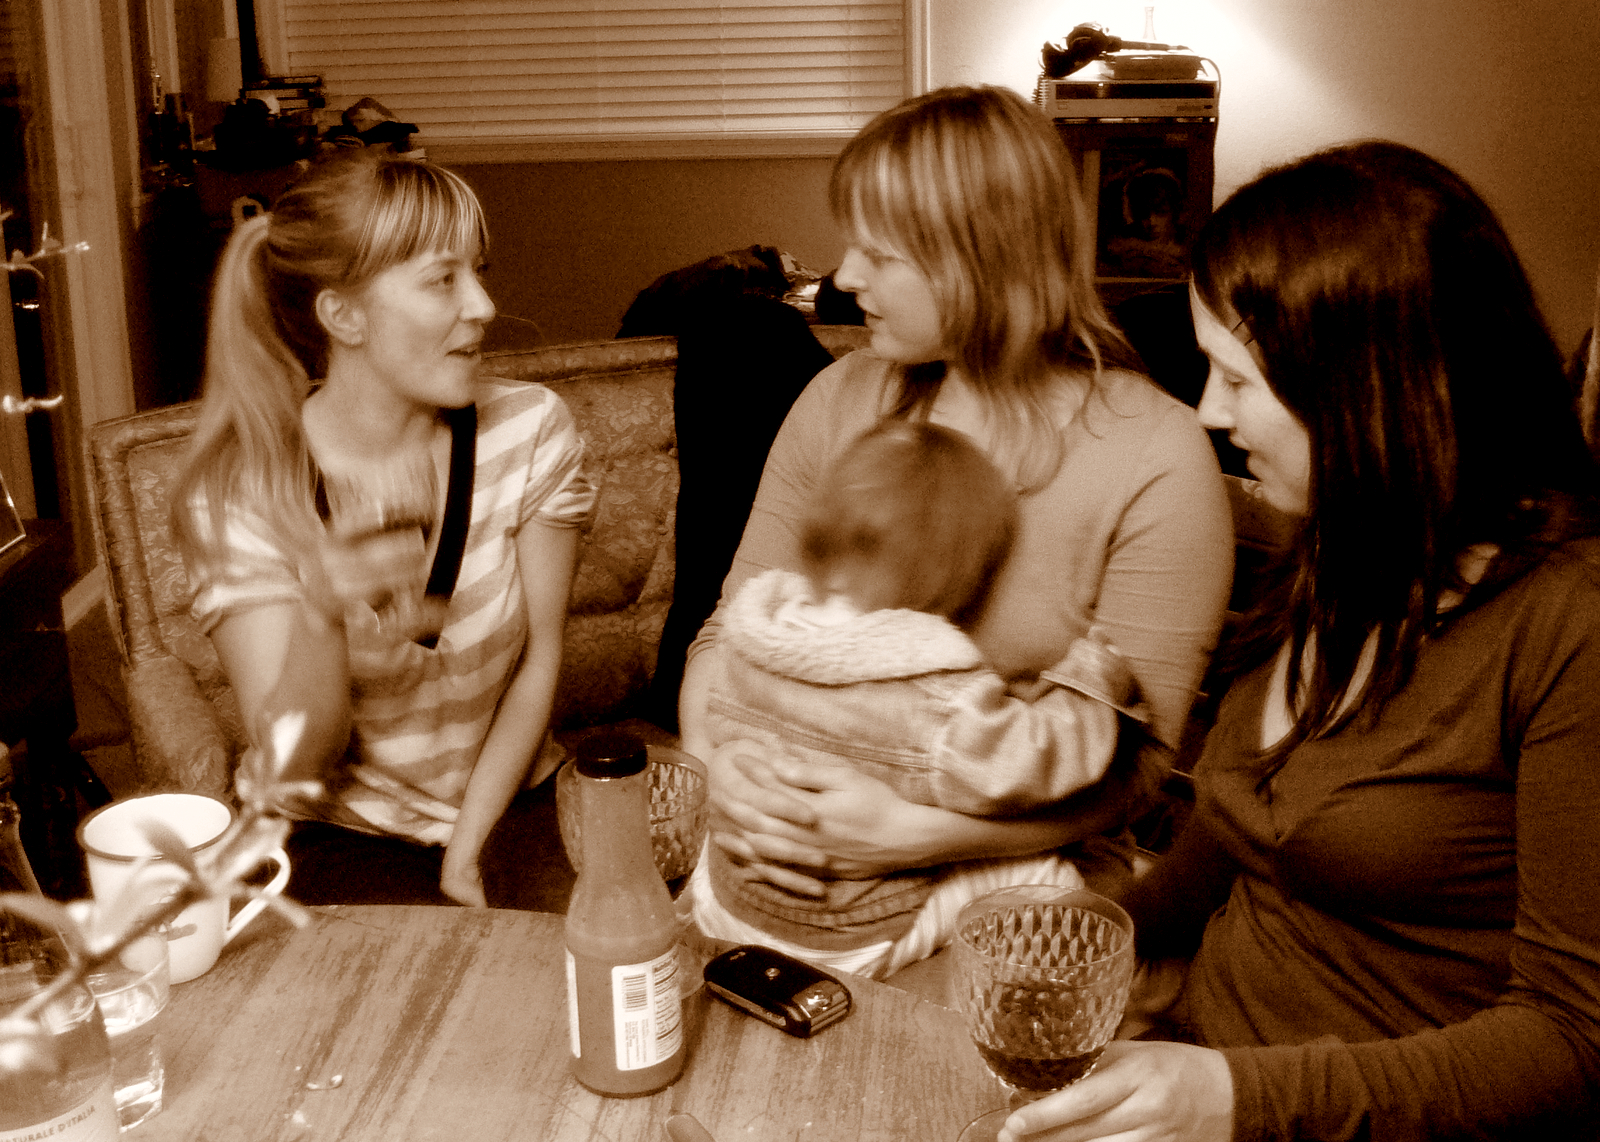 Labeling Parents: the Good, the Bad and the Very Ugly